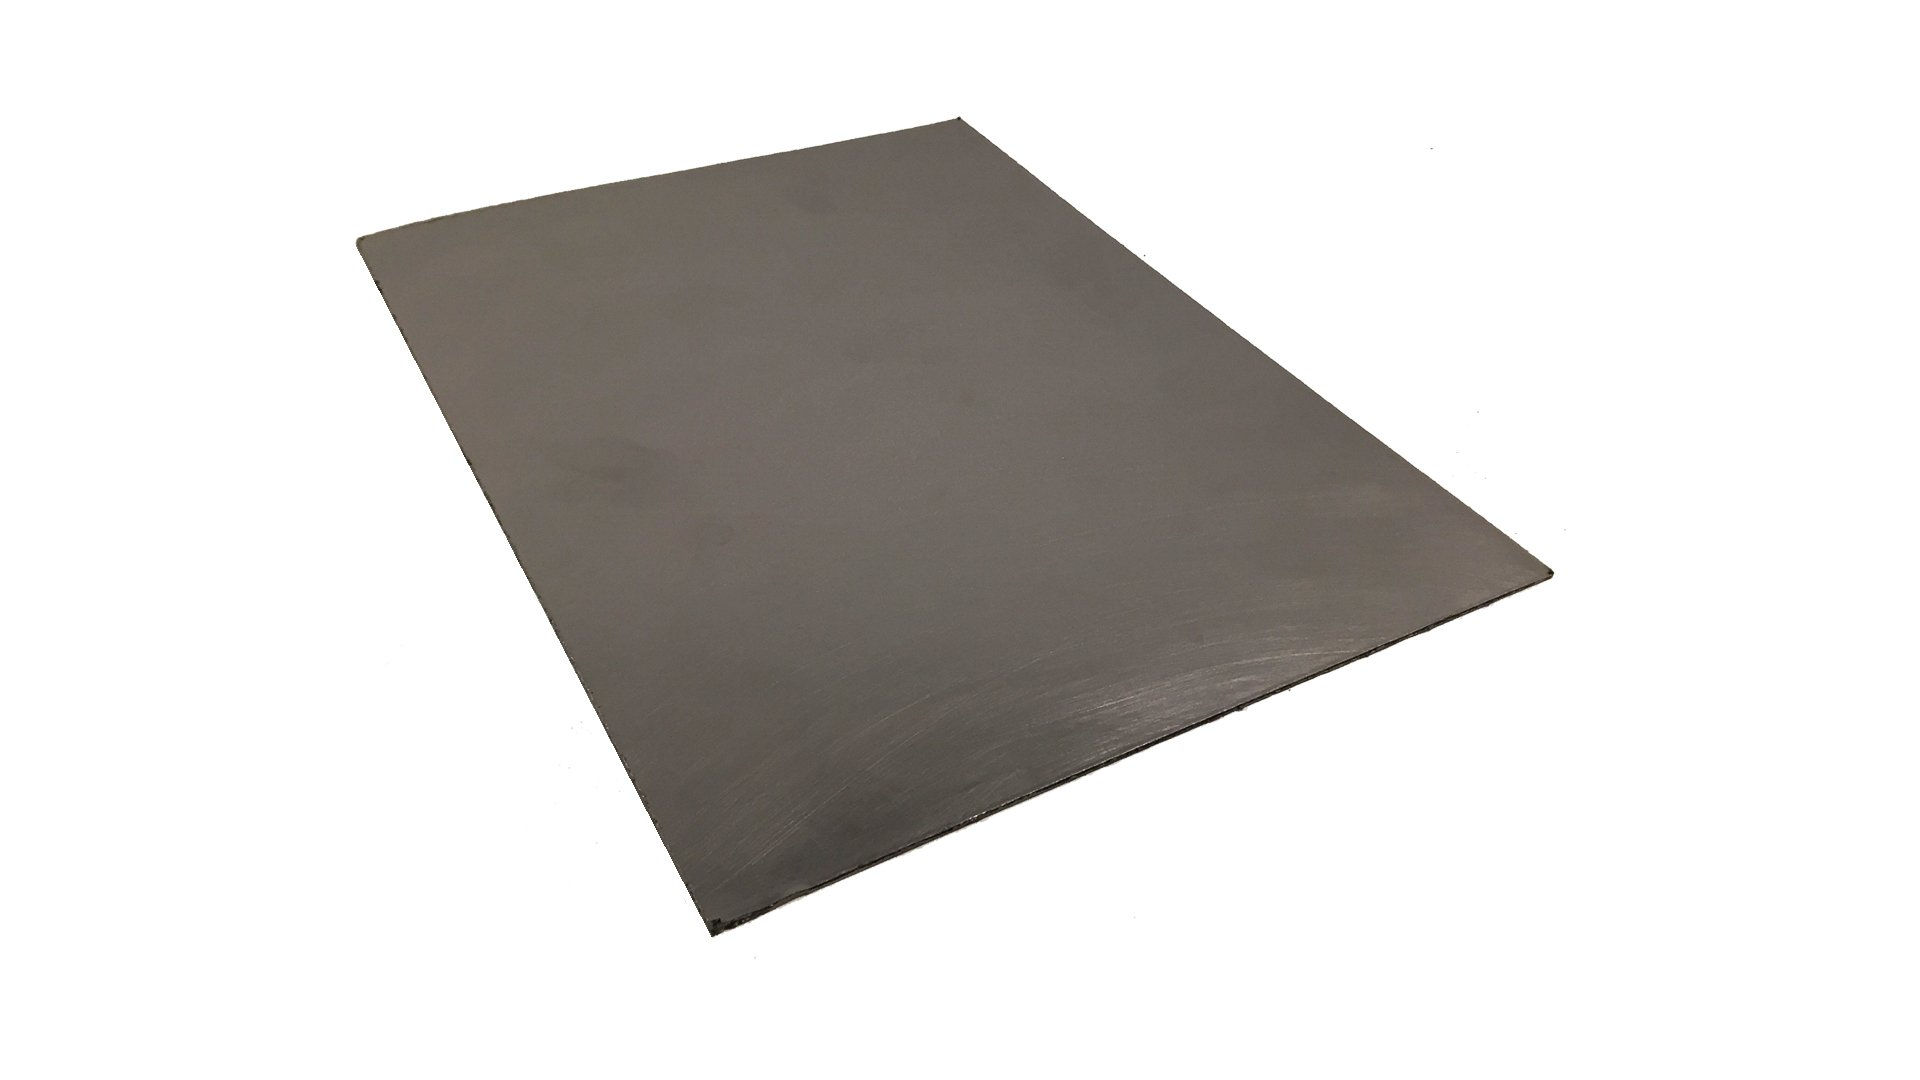 Sterling Seal 7000SP.062.10X13 Thick Graphite Sheet, 10'' x 13'' x 1/16'' by Sterling Seal & Supply, Inc. (STCC)